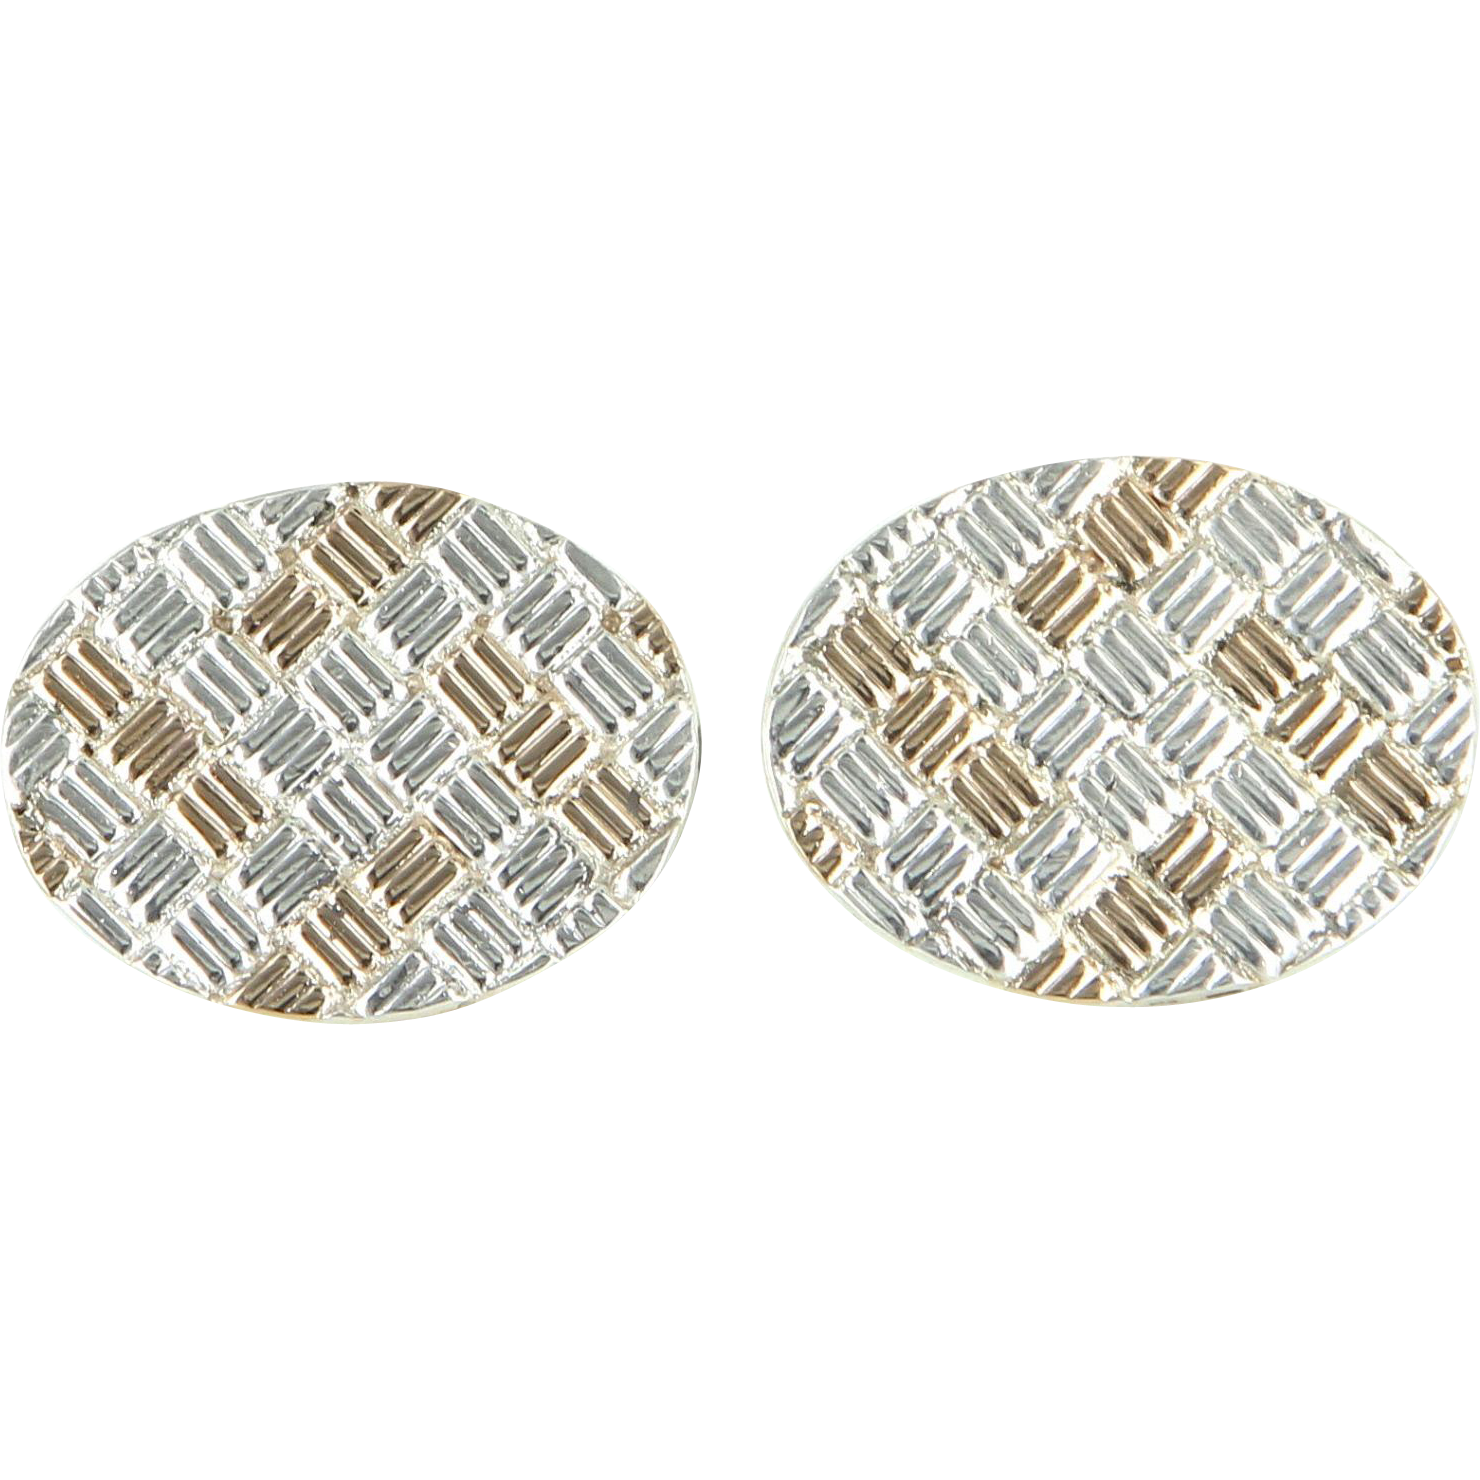 Tiffany & Co Mens 925 Sterling Silver 14 Karat Gold Vintage Cufflinks Mens Fine Jewelry Heirloom